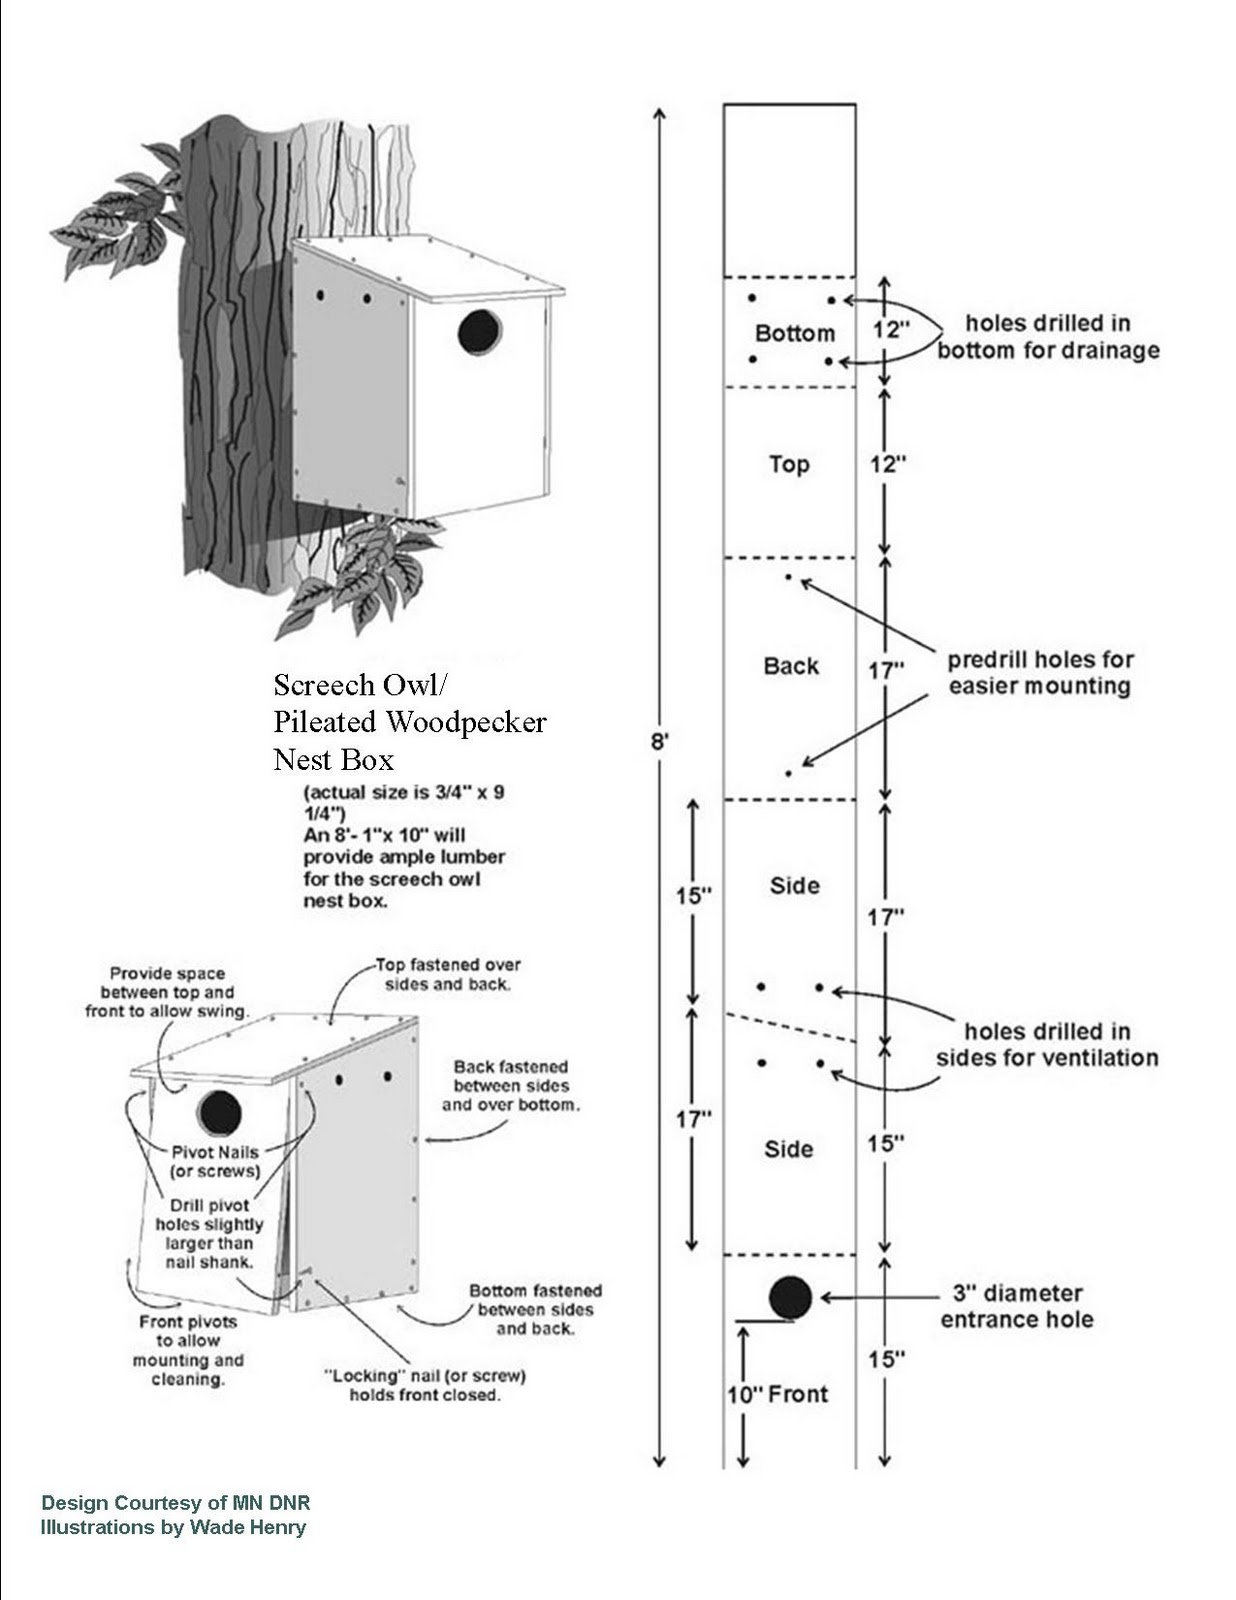 pdf plans pileated woodpecker bird house plans download